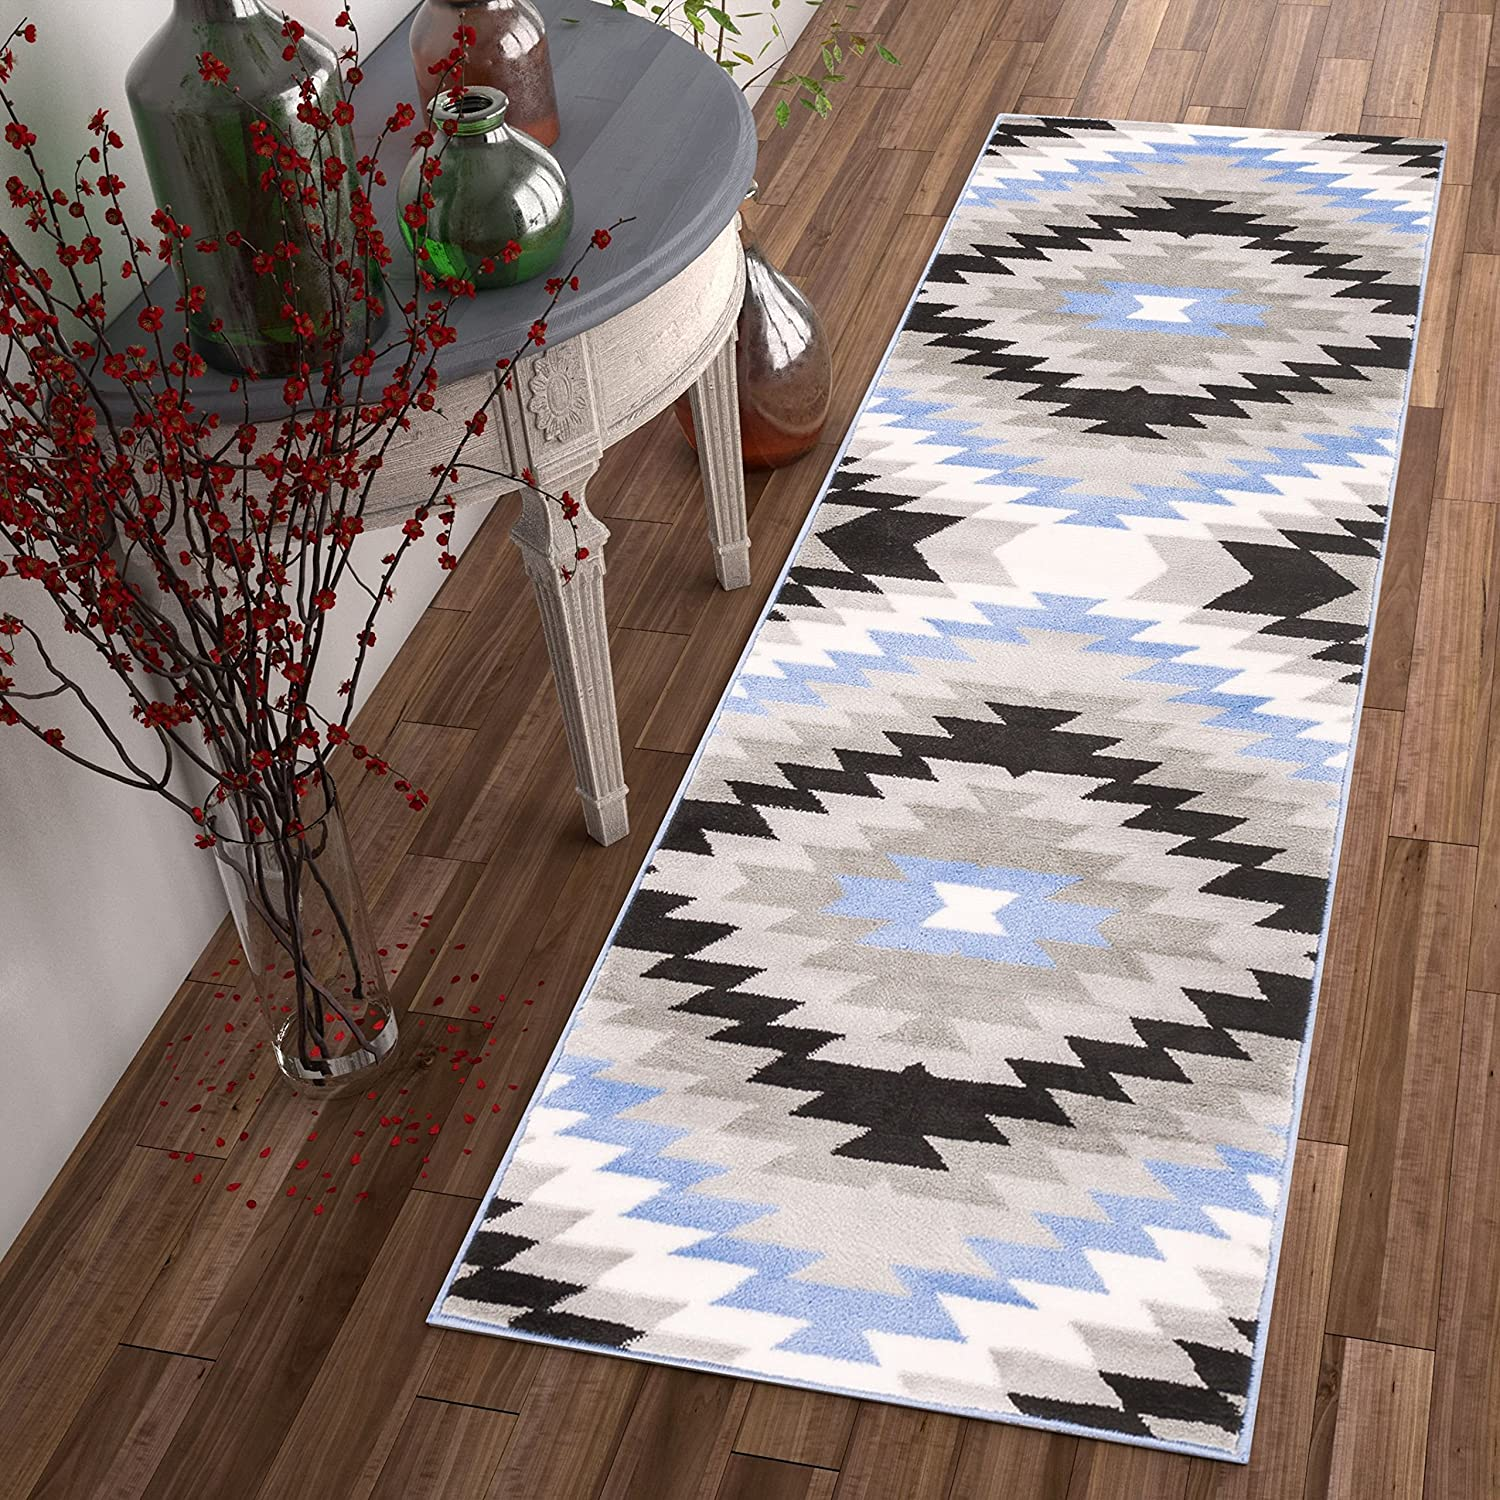 "Well Woven Dusky Mesa Grey & Blue Southwestern Modern Tribal Medallion Area Rug 2 x 7 (2'3"" x 7'3"" Runner) Easy Clean Stain Fade Resistant Shed Free Contemporary Thick Soft Plush Living Room Rug"